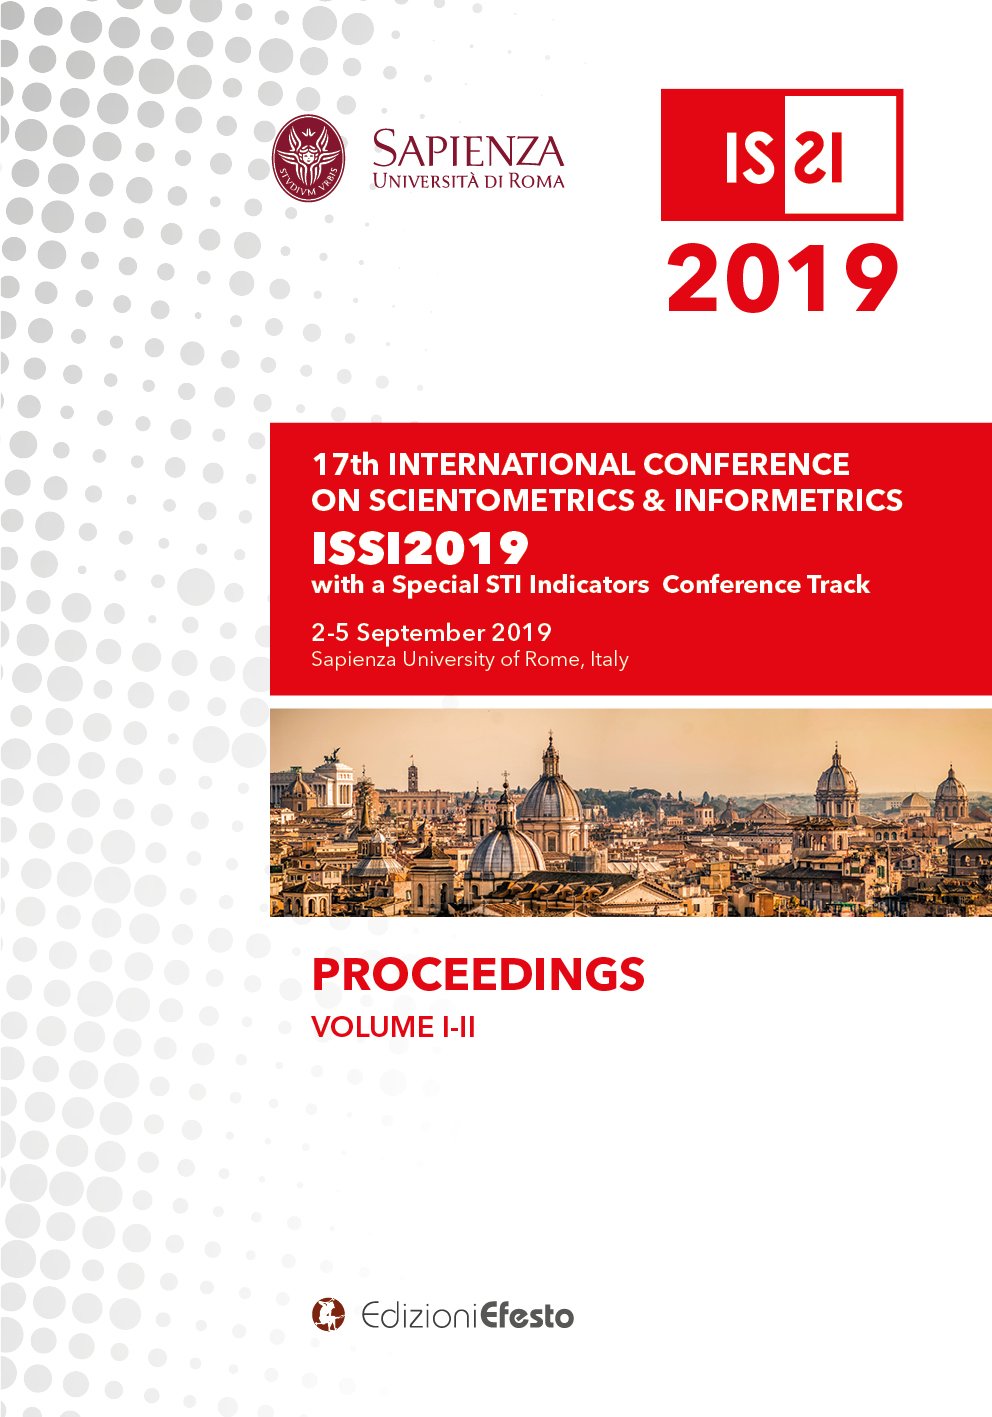 Copertina di PROCEEDINGS OF THE 17TH CONFERENCE OF THE INTERNATIONAL SOCIETY FOR SCIENTOMETRICS AND INFORMETRICS